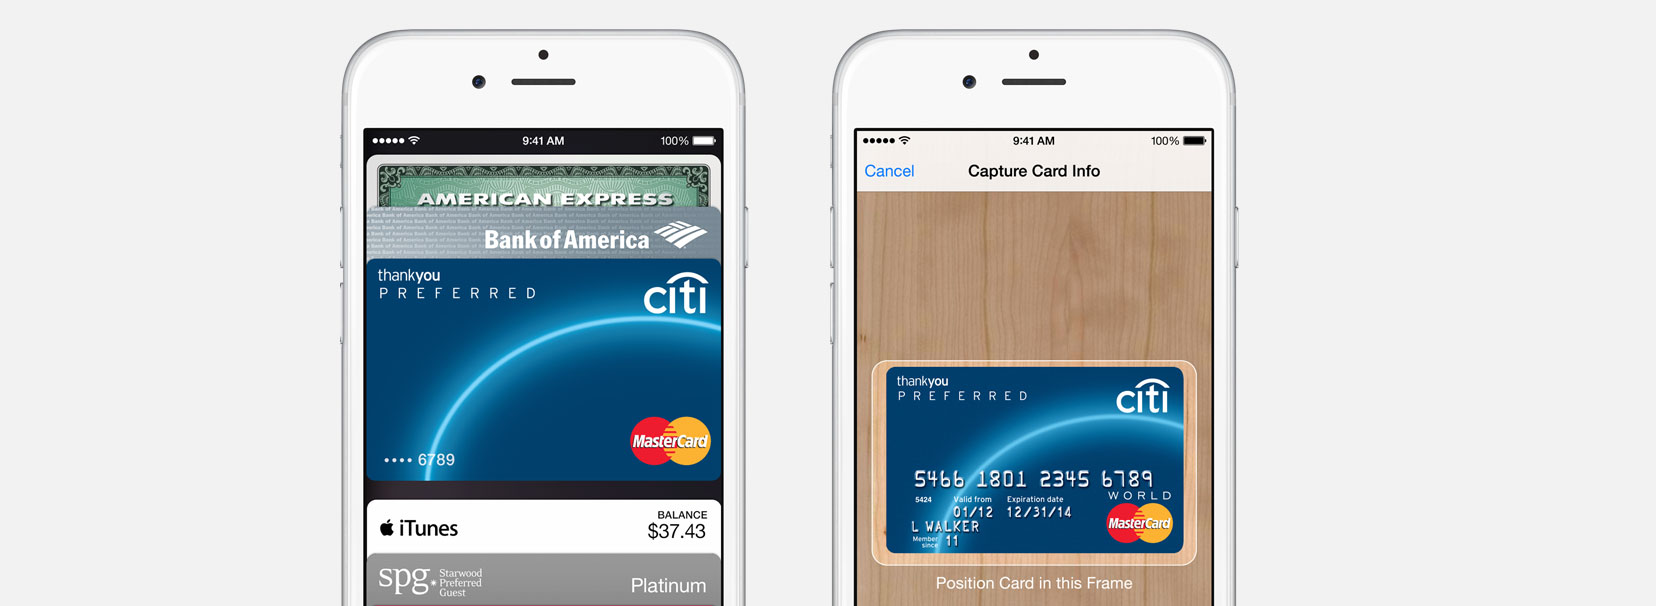 With Visa onboard, Apple Pay is likely to head to Europe soon